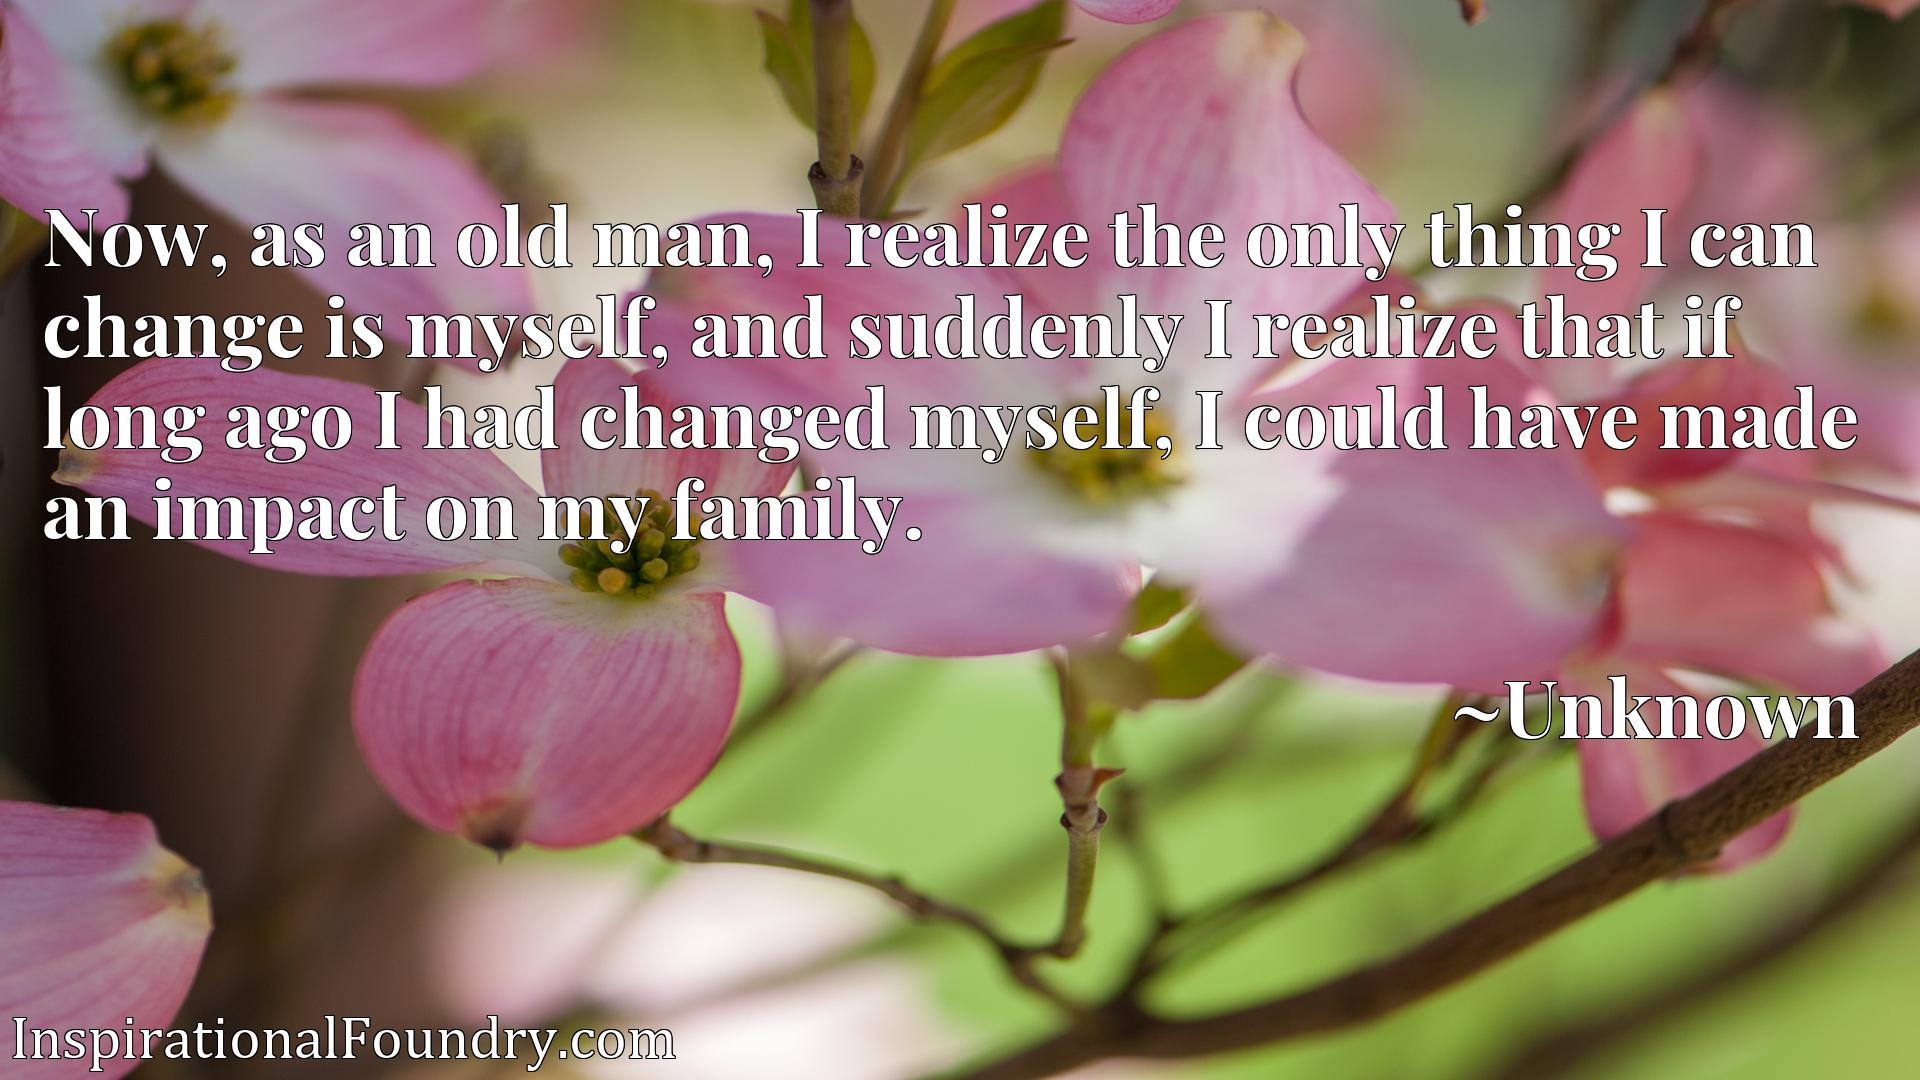 Now, as an old man, I realize the only thing I can change is myself, and suddenly I realize that if long ago I had changed myself, I could have made an impact on my family.